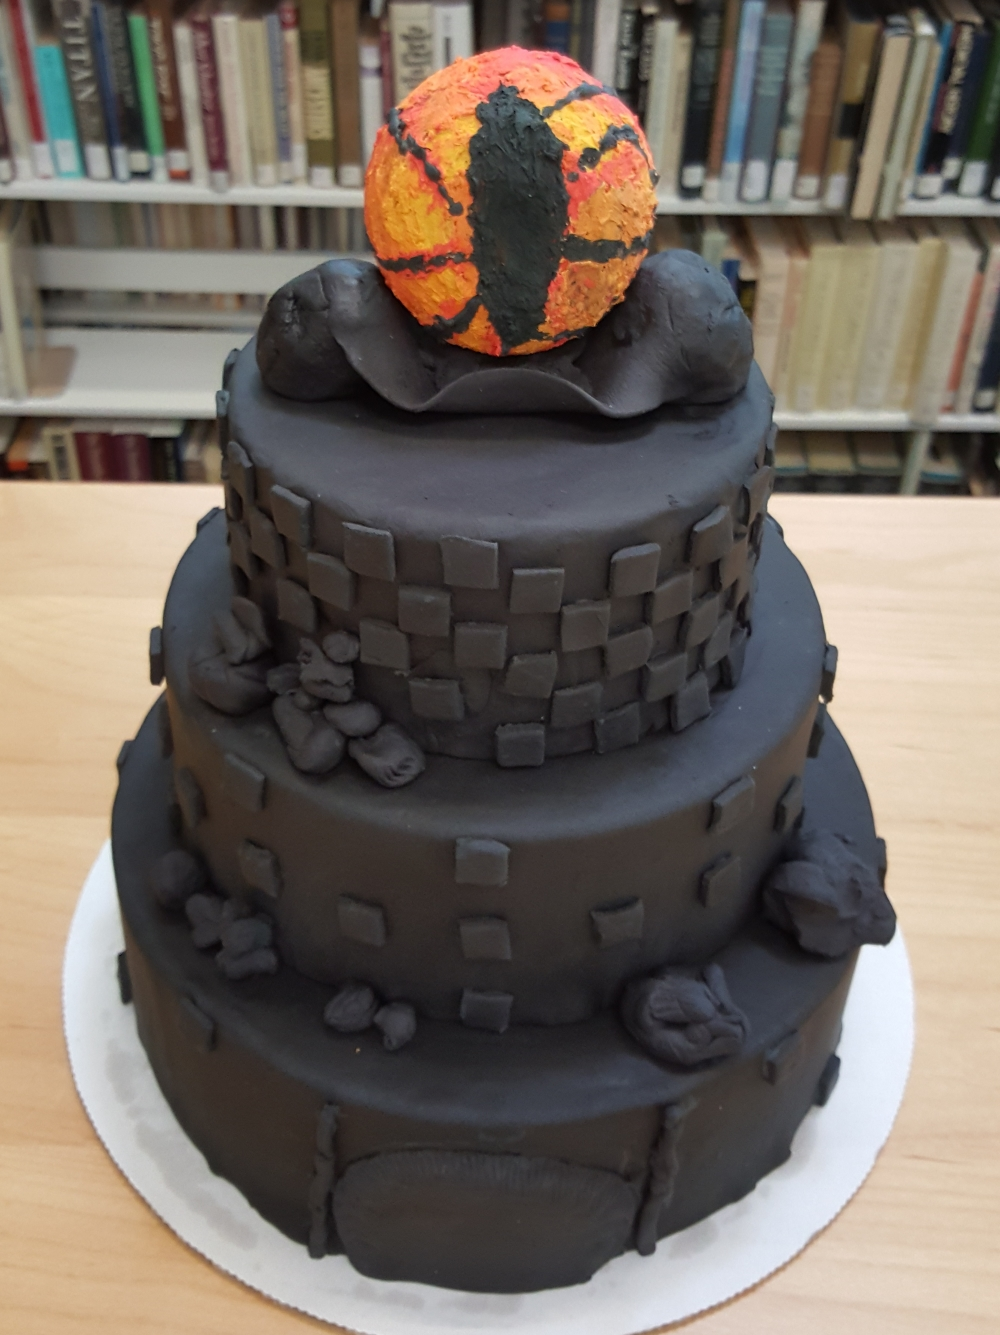 2019 Cakes Eye of Mordor Tower - top view